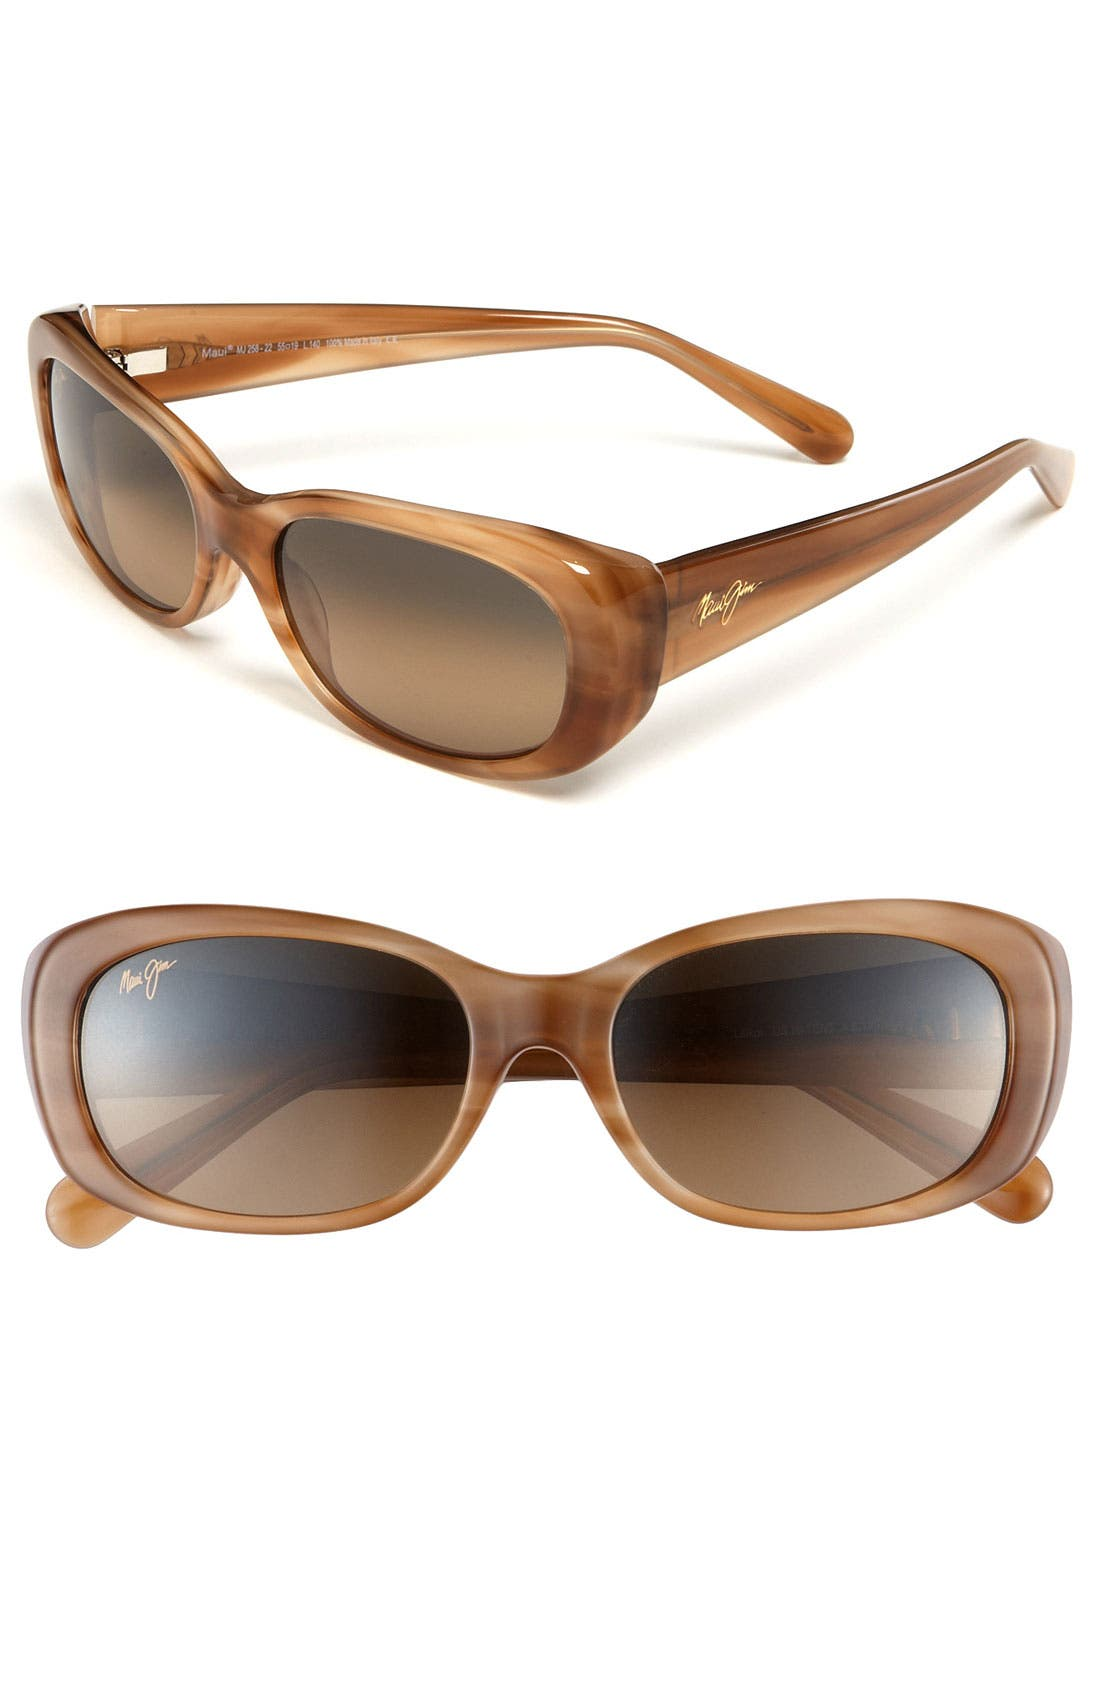 Main Image - Maui Jim 'Lilikoi' 55mm Sunglasses